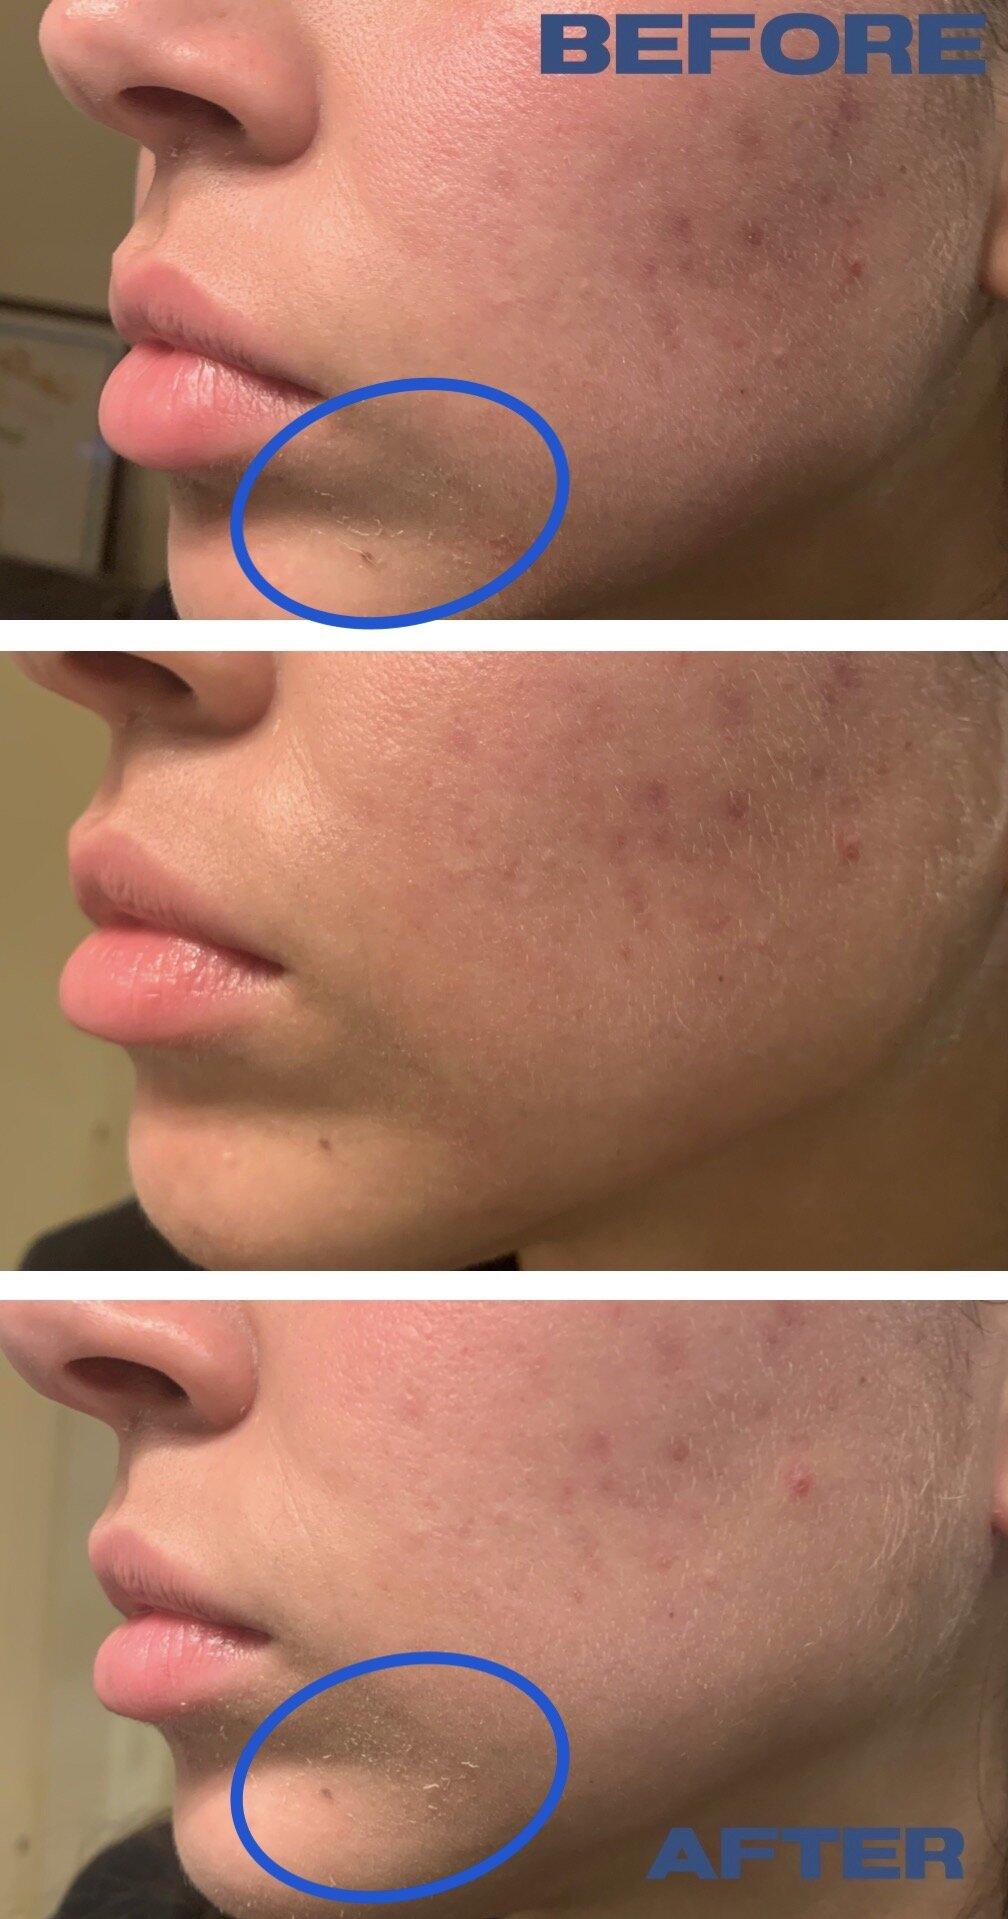 - I did not get clogged pores nor did my skin breakout but some people have reported that this broke them out. I could not find any corrolation with Astragalus Membranaceus Root Extract and acne (unless you're alergic). People seem to blame the presence of silicones in the product, but Bis-PEG-18 Methyl Ether Dimethyl Silane is water soluble which makes it even more suitable for sensitive skin (usually silicones are oil soluble) and silicones get a bad reputation without a scientific basis (they're some of the most breathable synthetic layers out there). Perhaps the people with these reactions are alergic to one of the ingredients or sensitized to silicones. If you've had a bad experience with silicones in the past or you want to stay in the safe side because you're acne prone, but still want to try this product out you can always buy the 4.90$(30ml Link) version first and test it out.Would I recommend this? Only if you have oily skin and didn't like the klairs toner. And maybe if you live somewhere really hot where you only want a bit of simple hydration. Otherwise, stick to the klairs one.